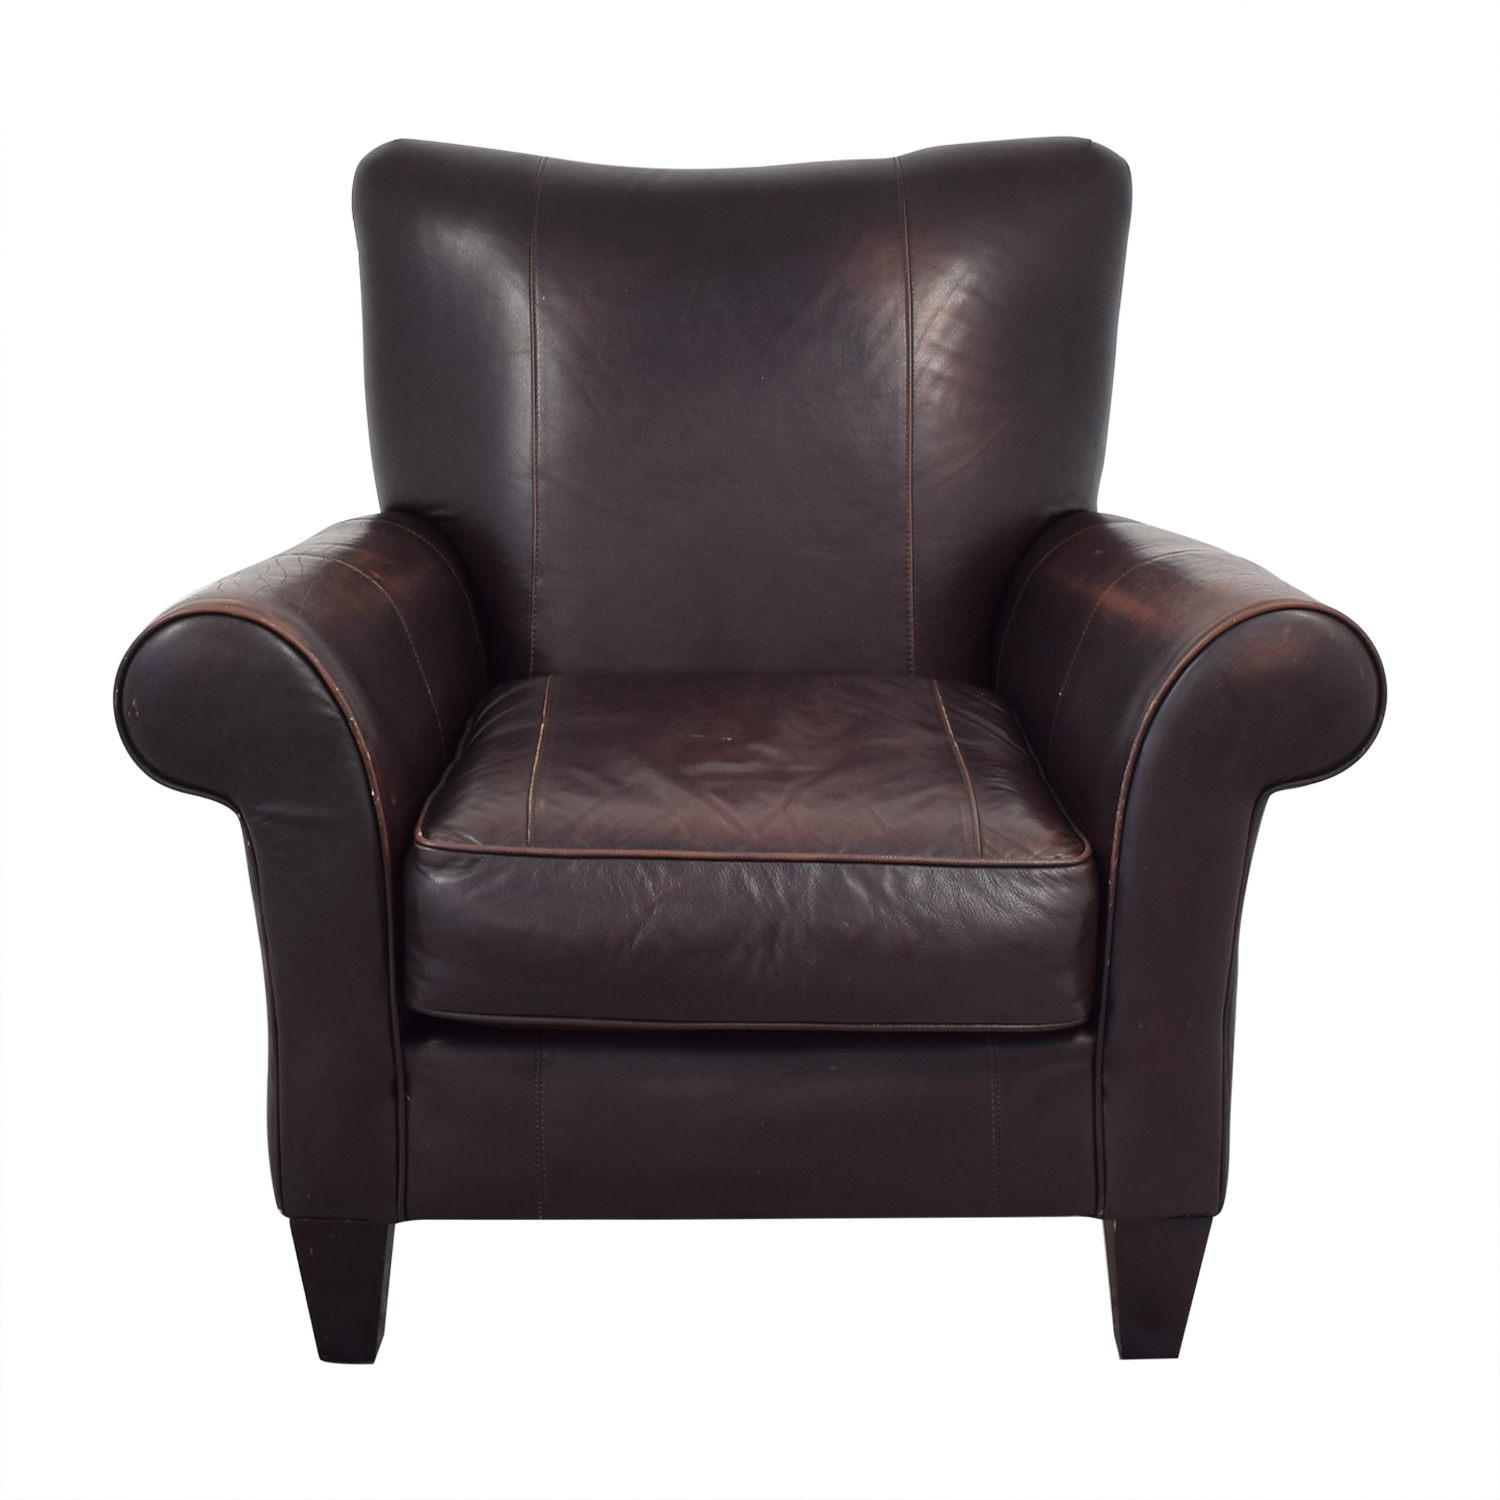 Bauhaus Furniture Bauhaus Furniture Leather Chair Sofas